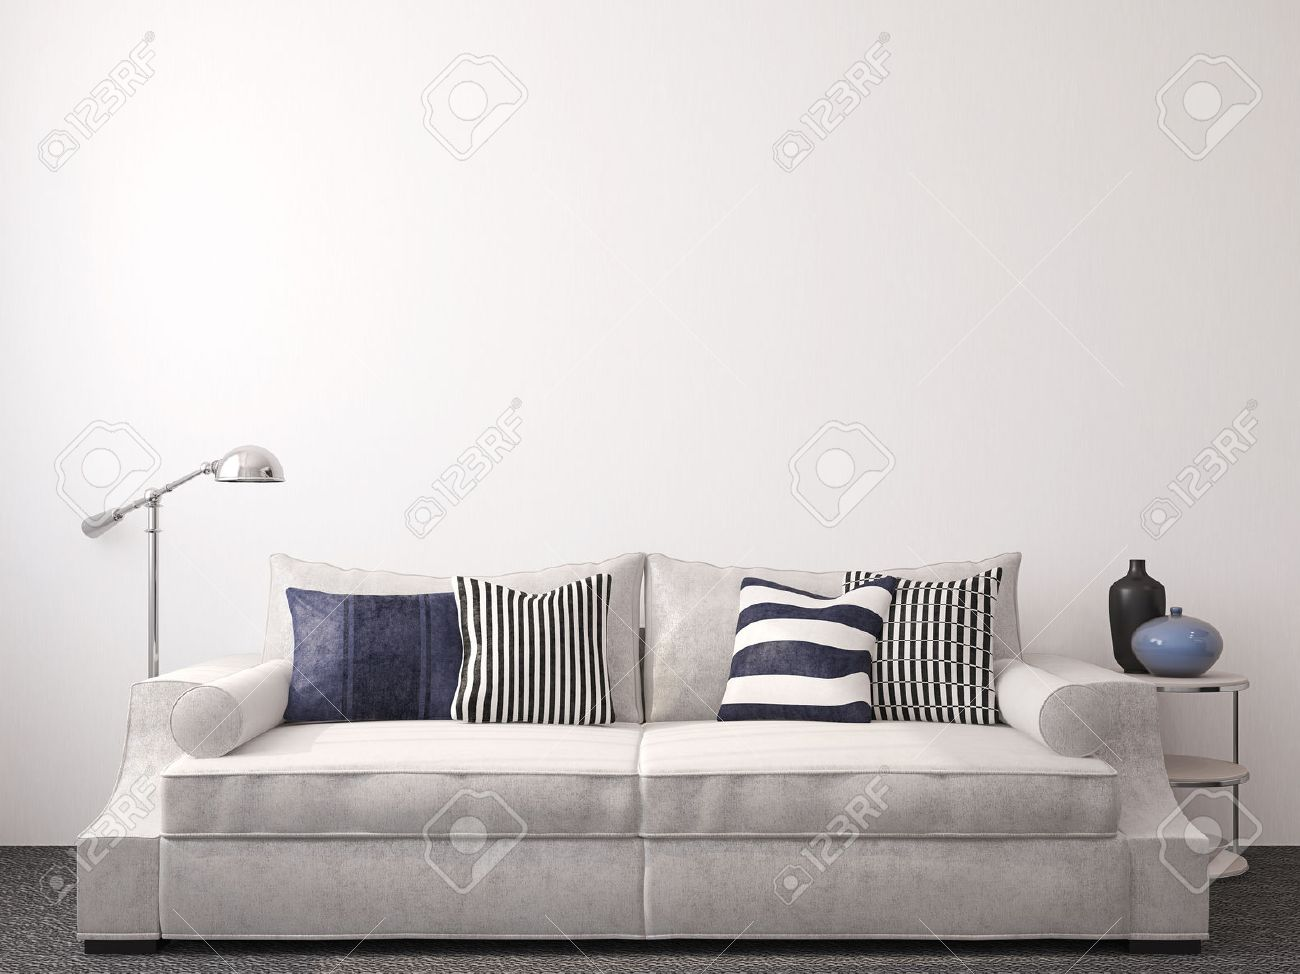 Modern Living Room Interior With Couch Near Empty White Wall. 3d Render.  Imagens